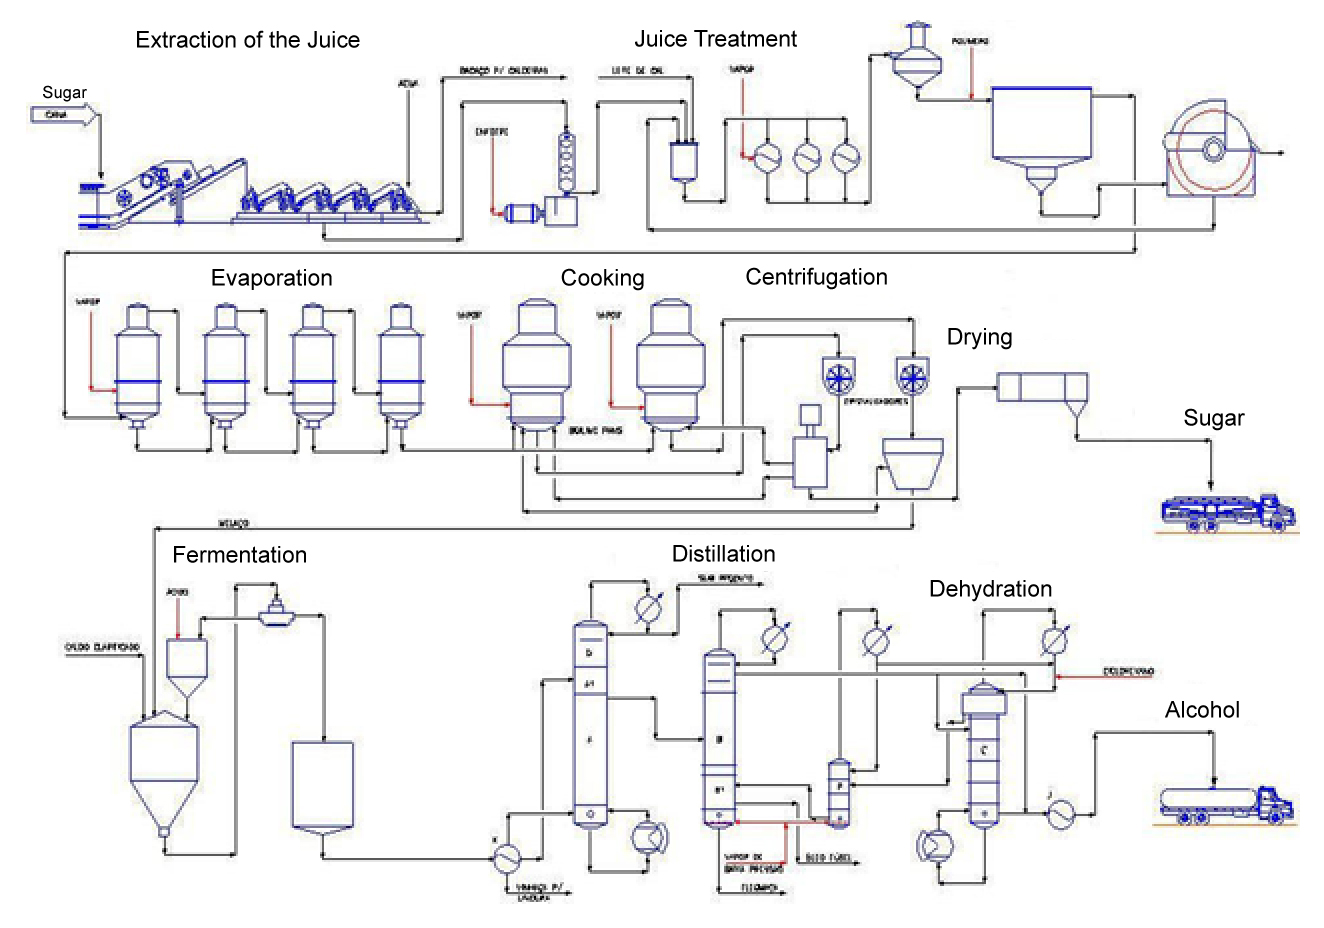 Ethanol Plant Process Flow Diagram Guide And Troubleshooting Of Wastewater Treatment Chart Sugar Production From Sugarcane Wiring Lurge